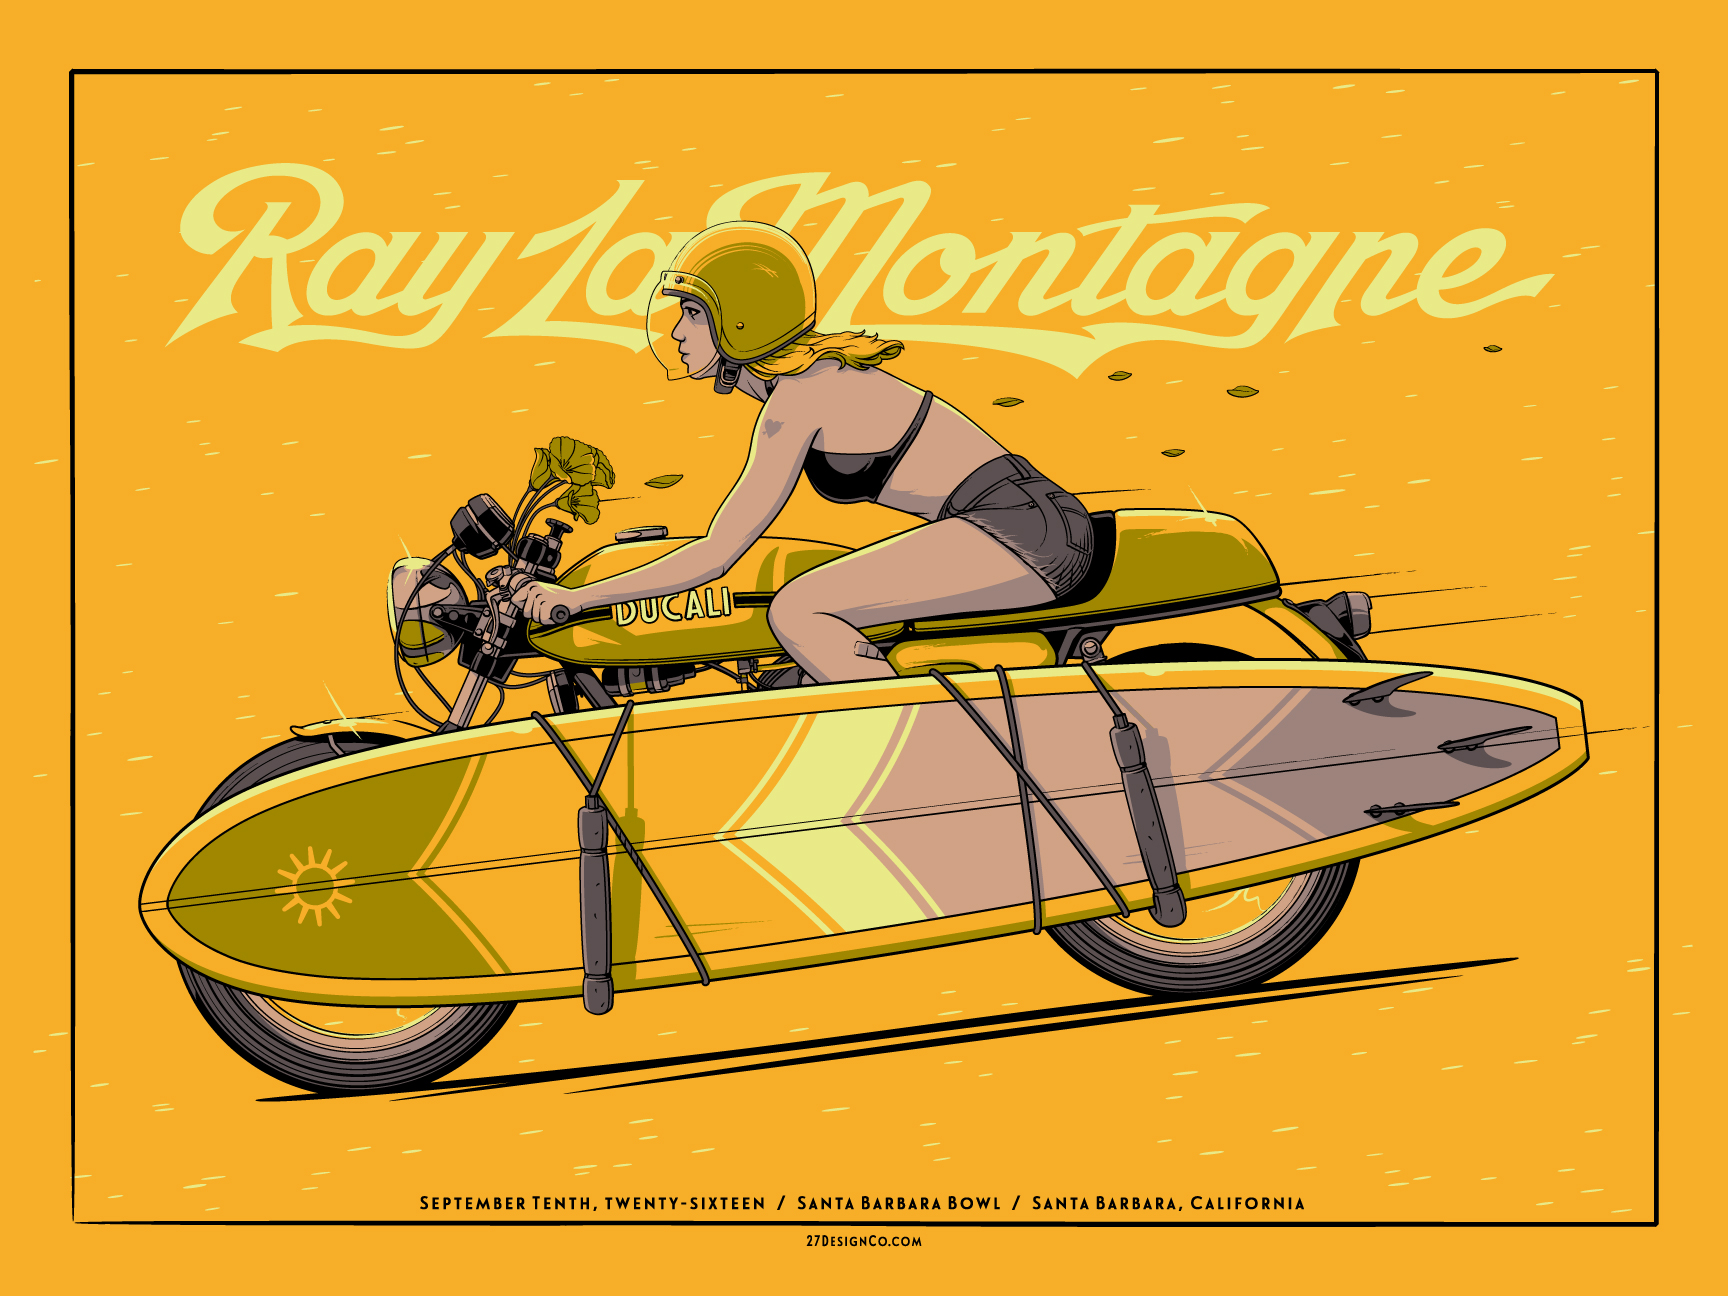 """Ray LaMontagne - Santa Barbara, CA 2016"" by Charles Crisler.  24"" x 18"" 4-color Screenprint.  Ed of 140 S/N.  $30"